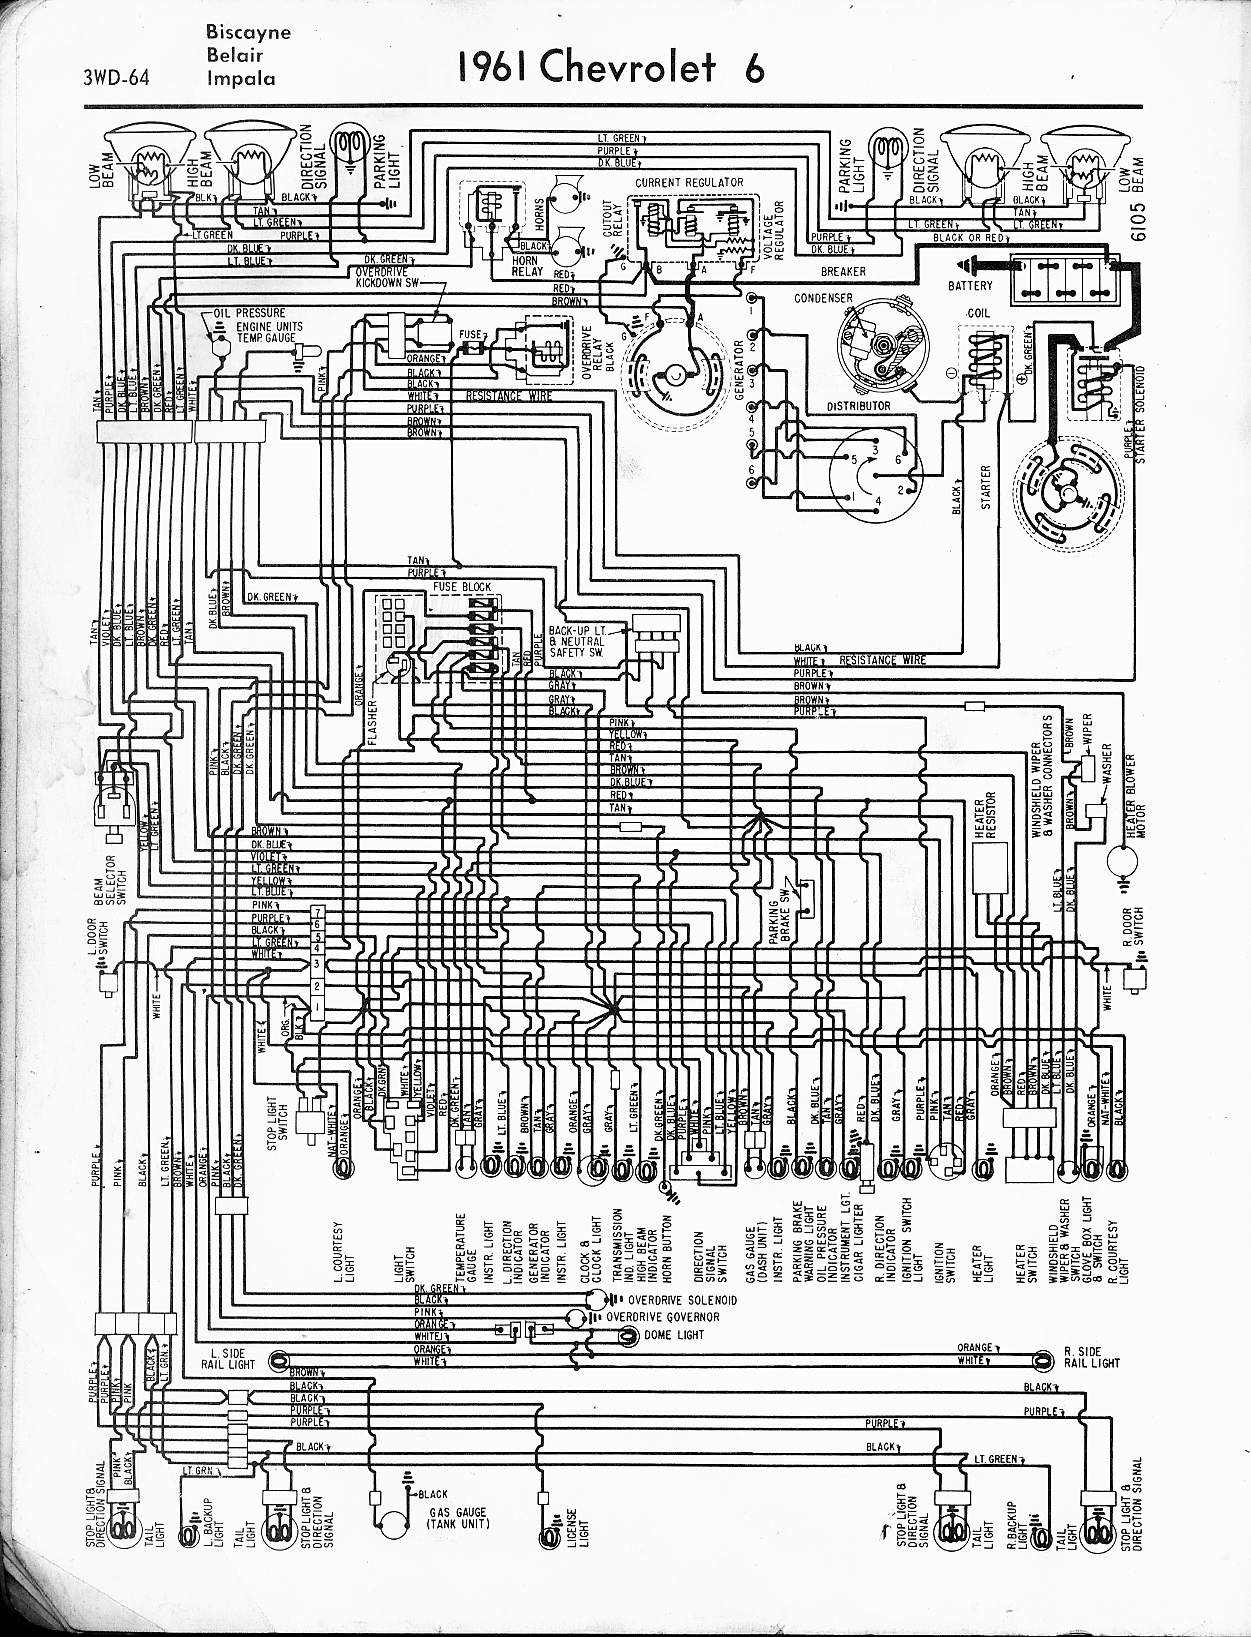 MWireChev61_3WD 064 57 65 chevy wiring diagrams 1960 chevy impala wiring diagram at crackthecode.co